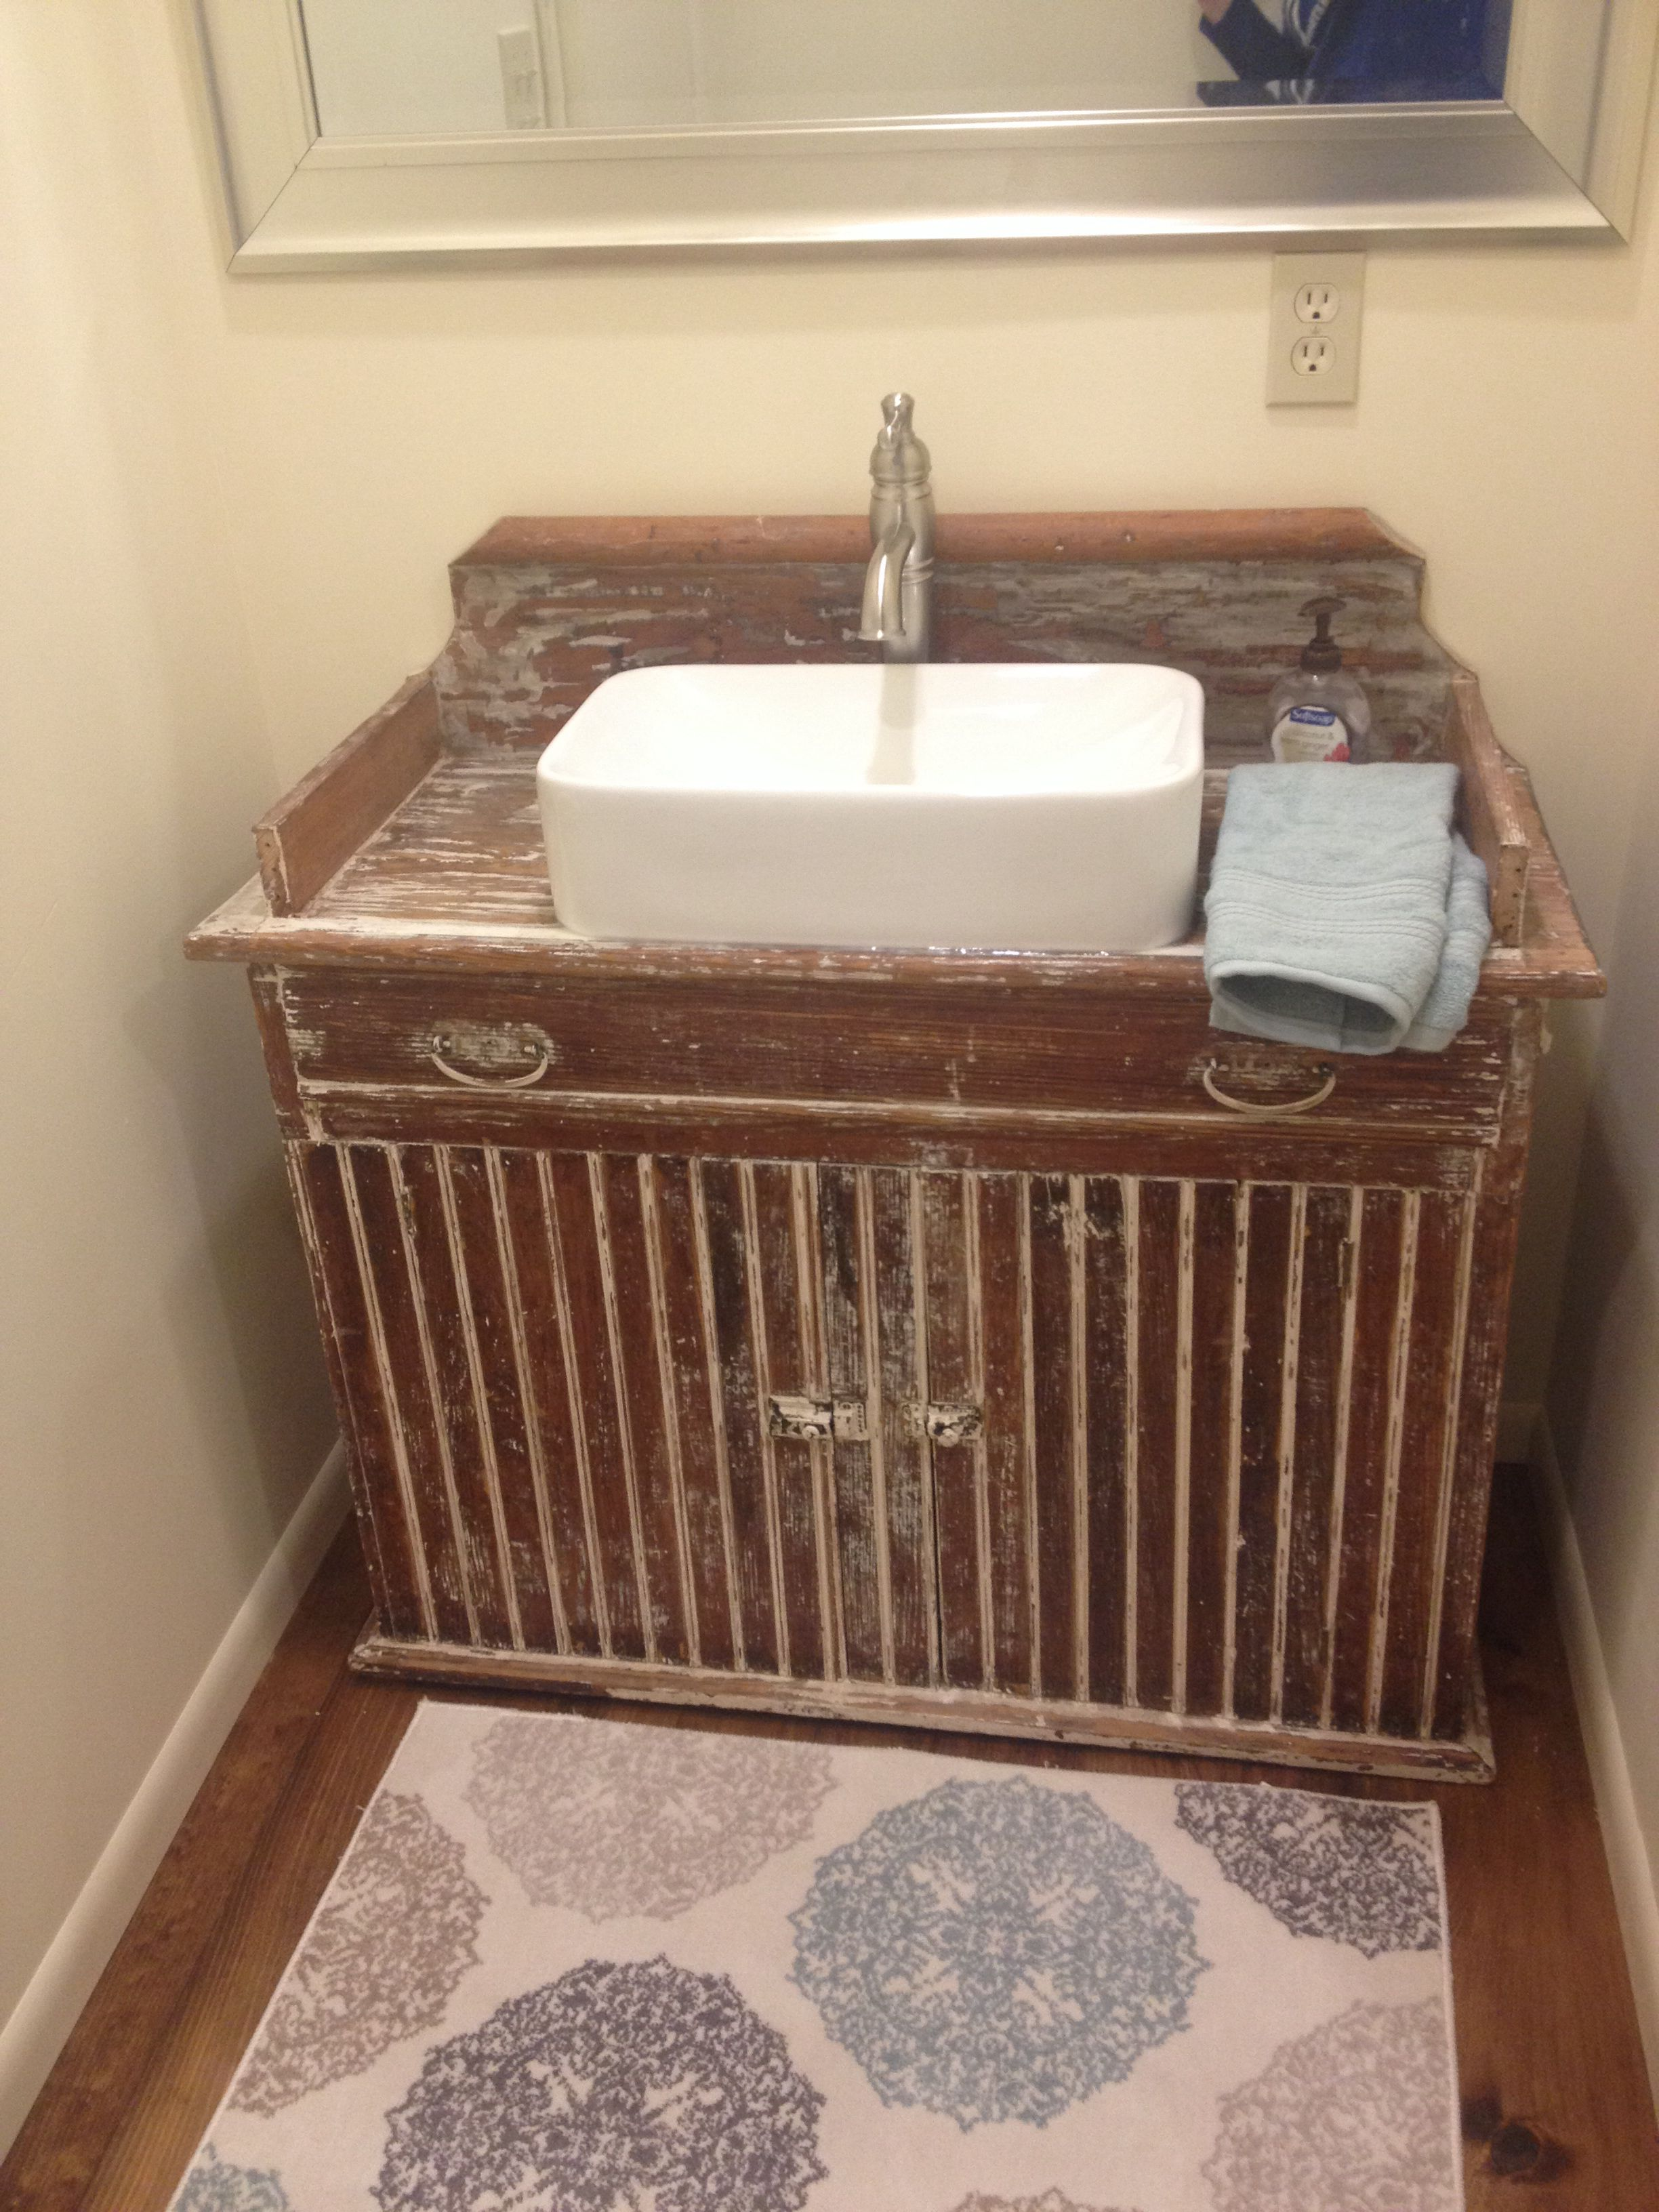 A Primitive Dry Sink We Made Into A Bathroom Vanity Vessel Sink